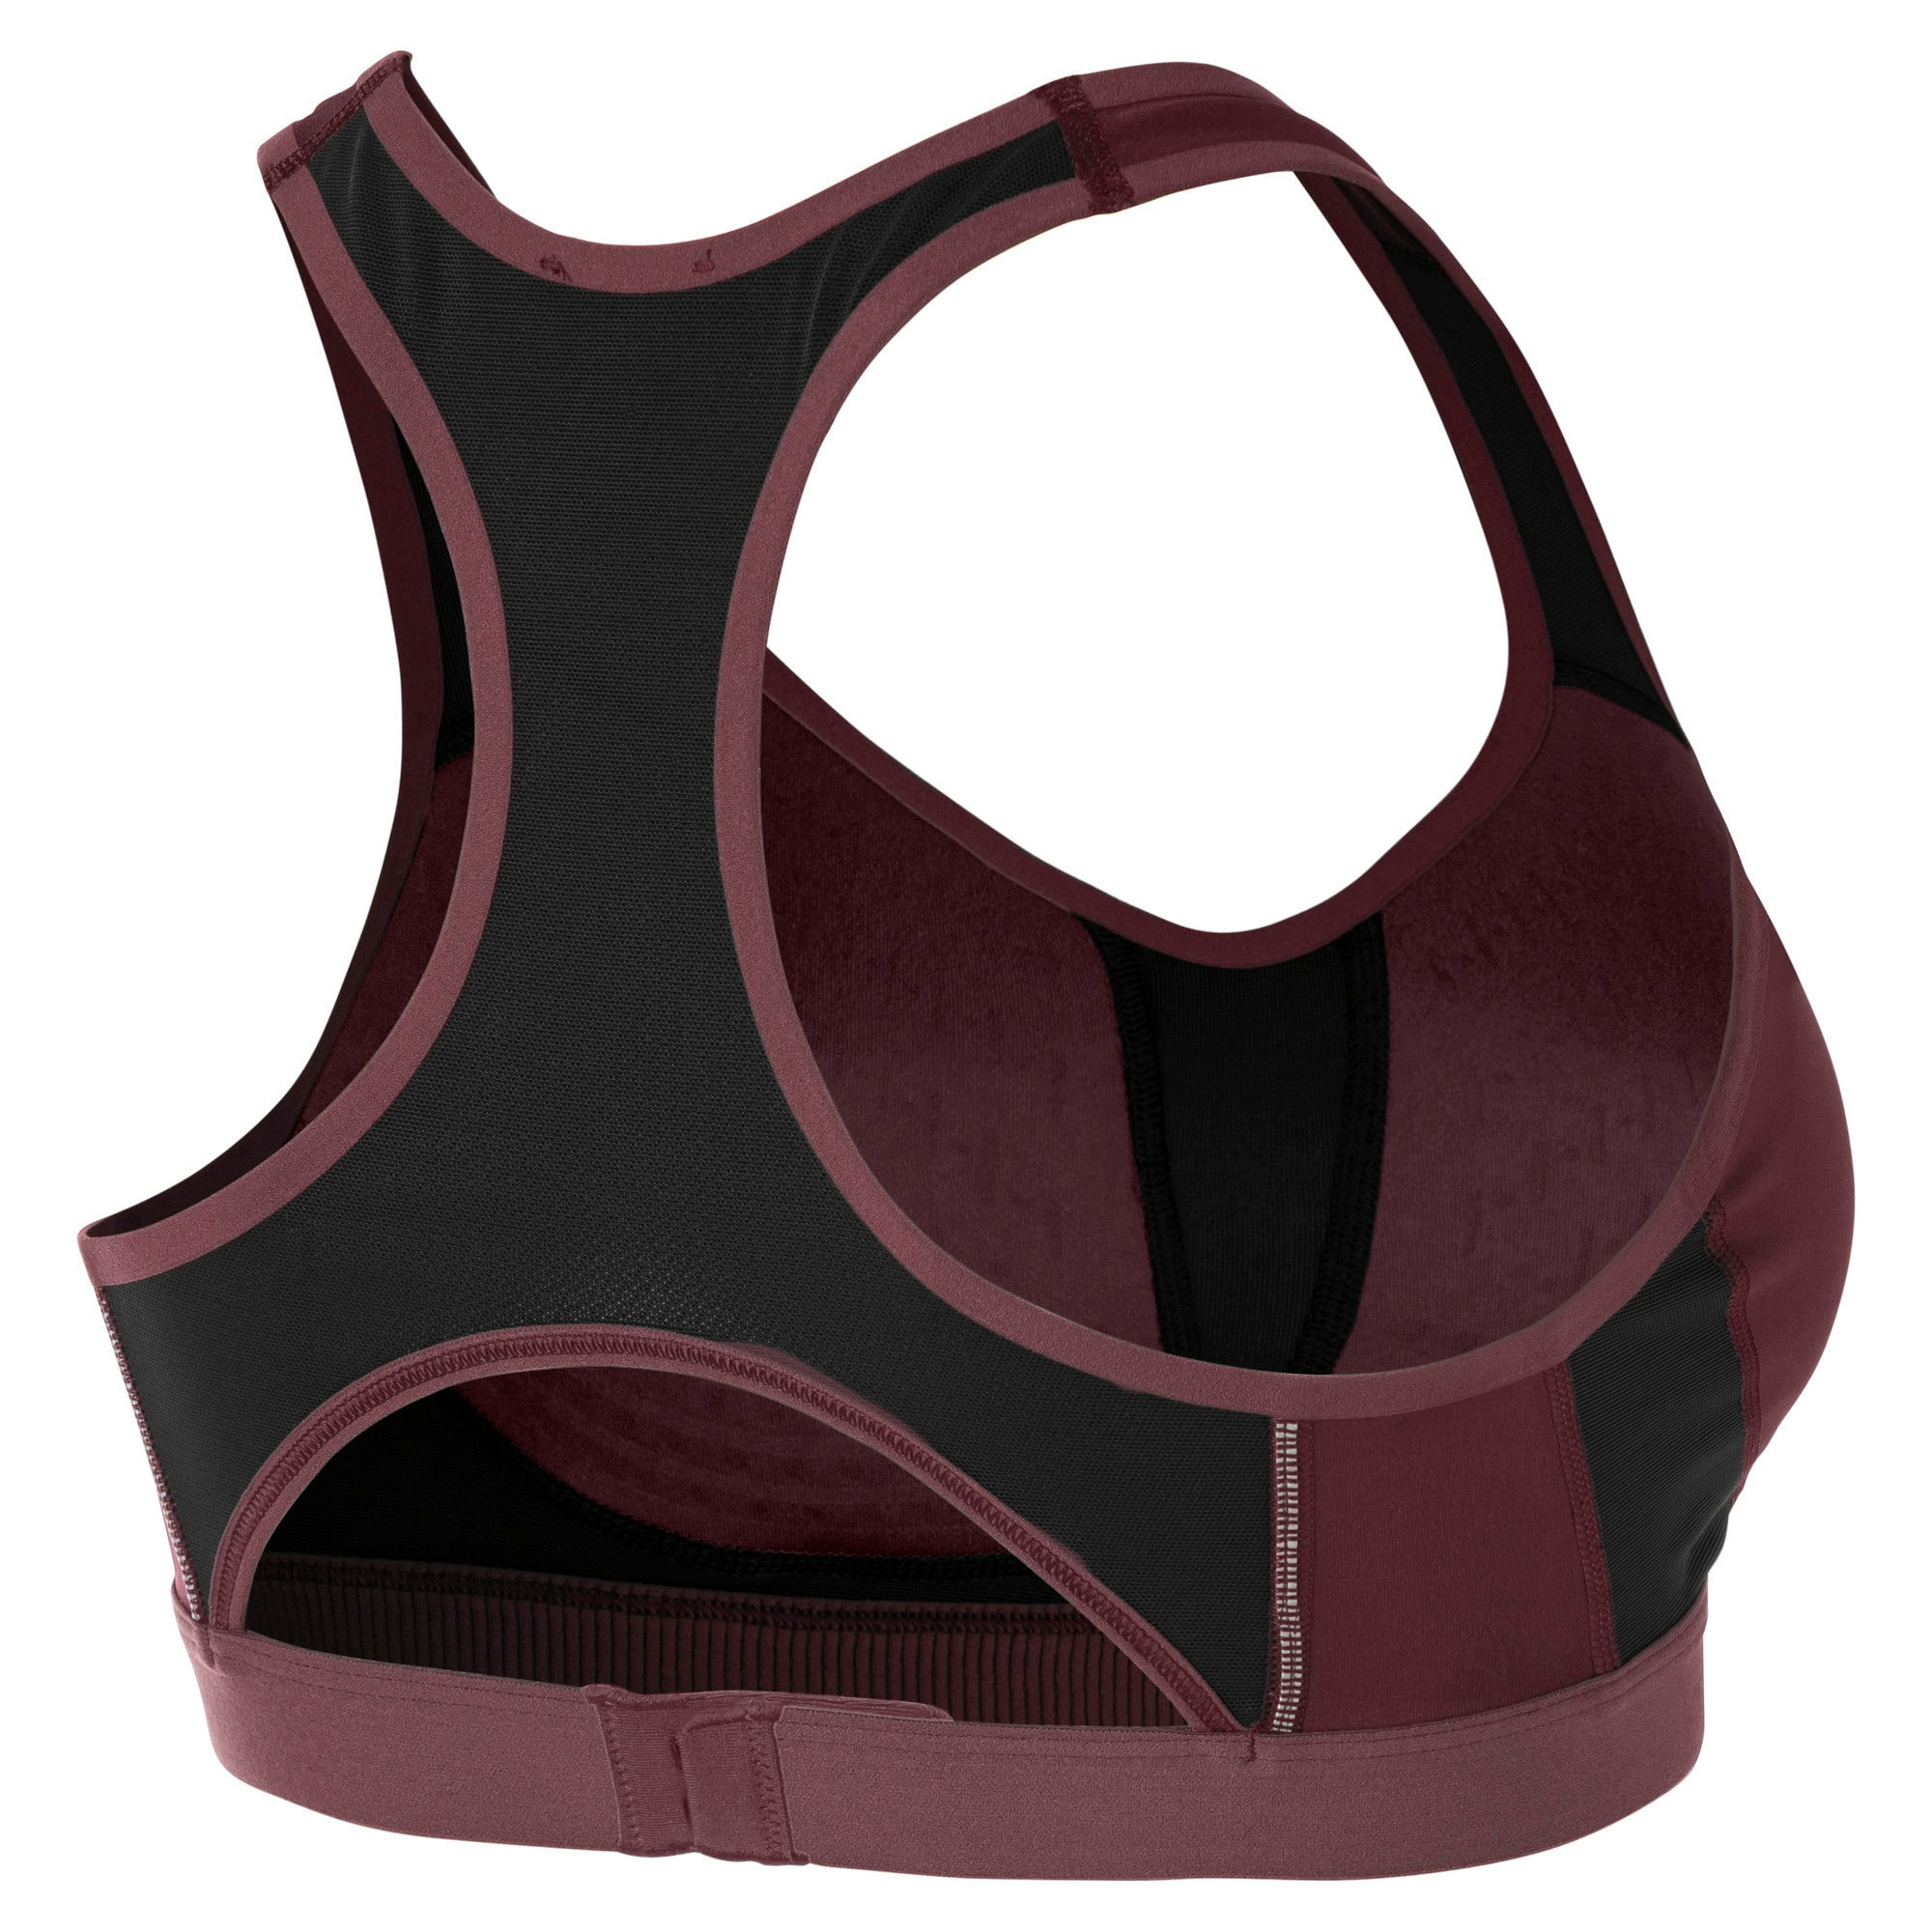 Thumbnail 5 of Get Fast Women's Training Bra, Vineyard Wine-Puma Black, medium